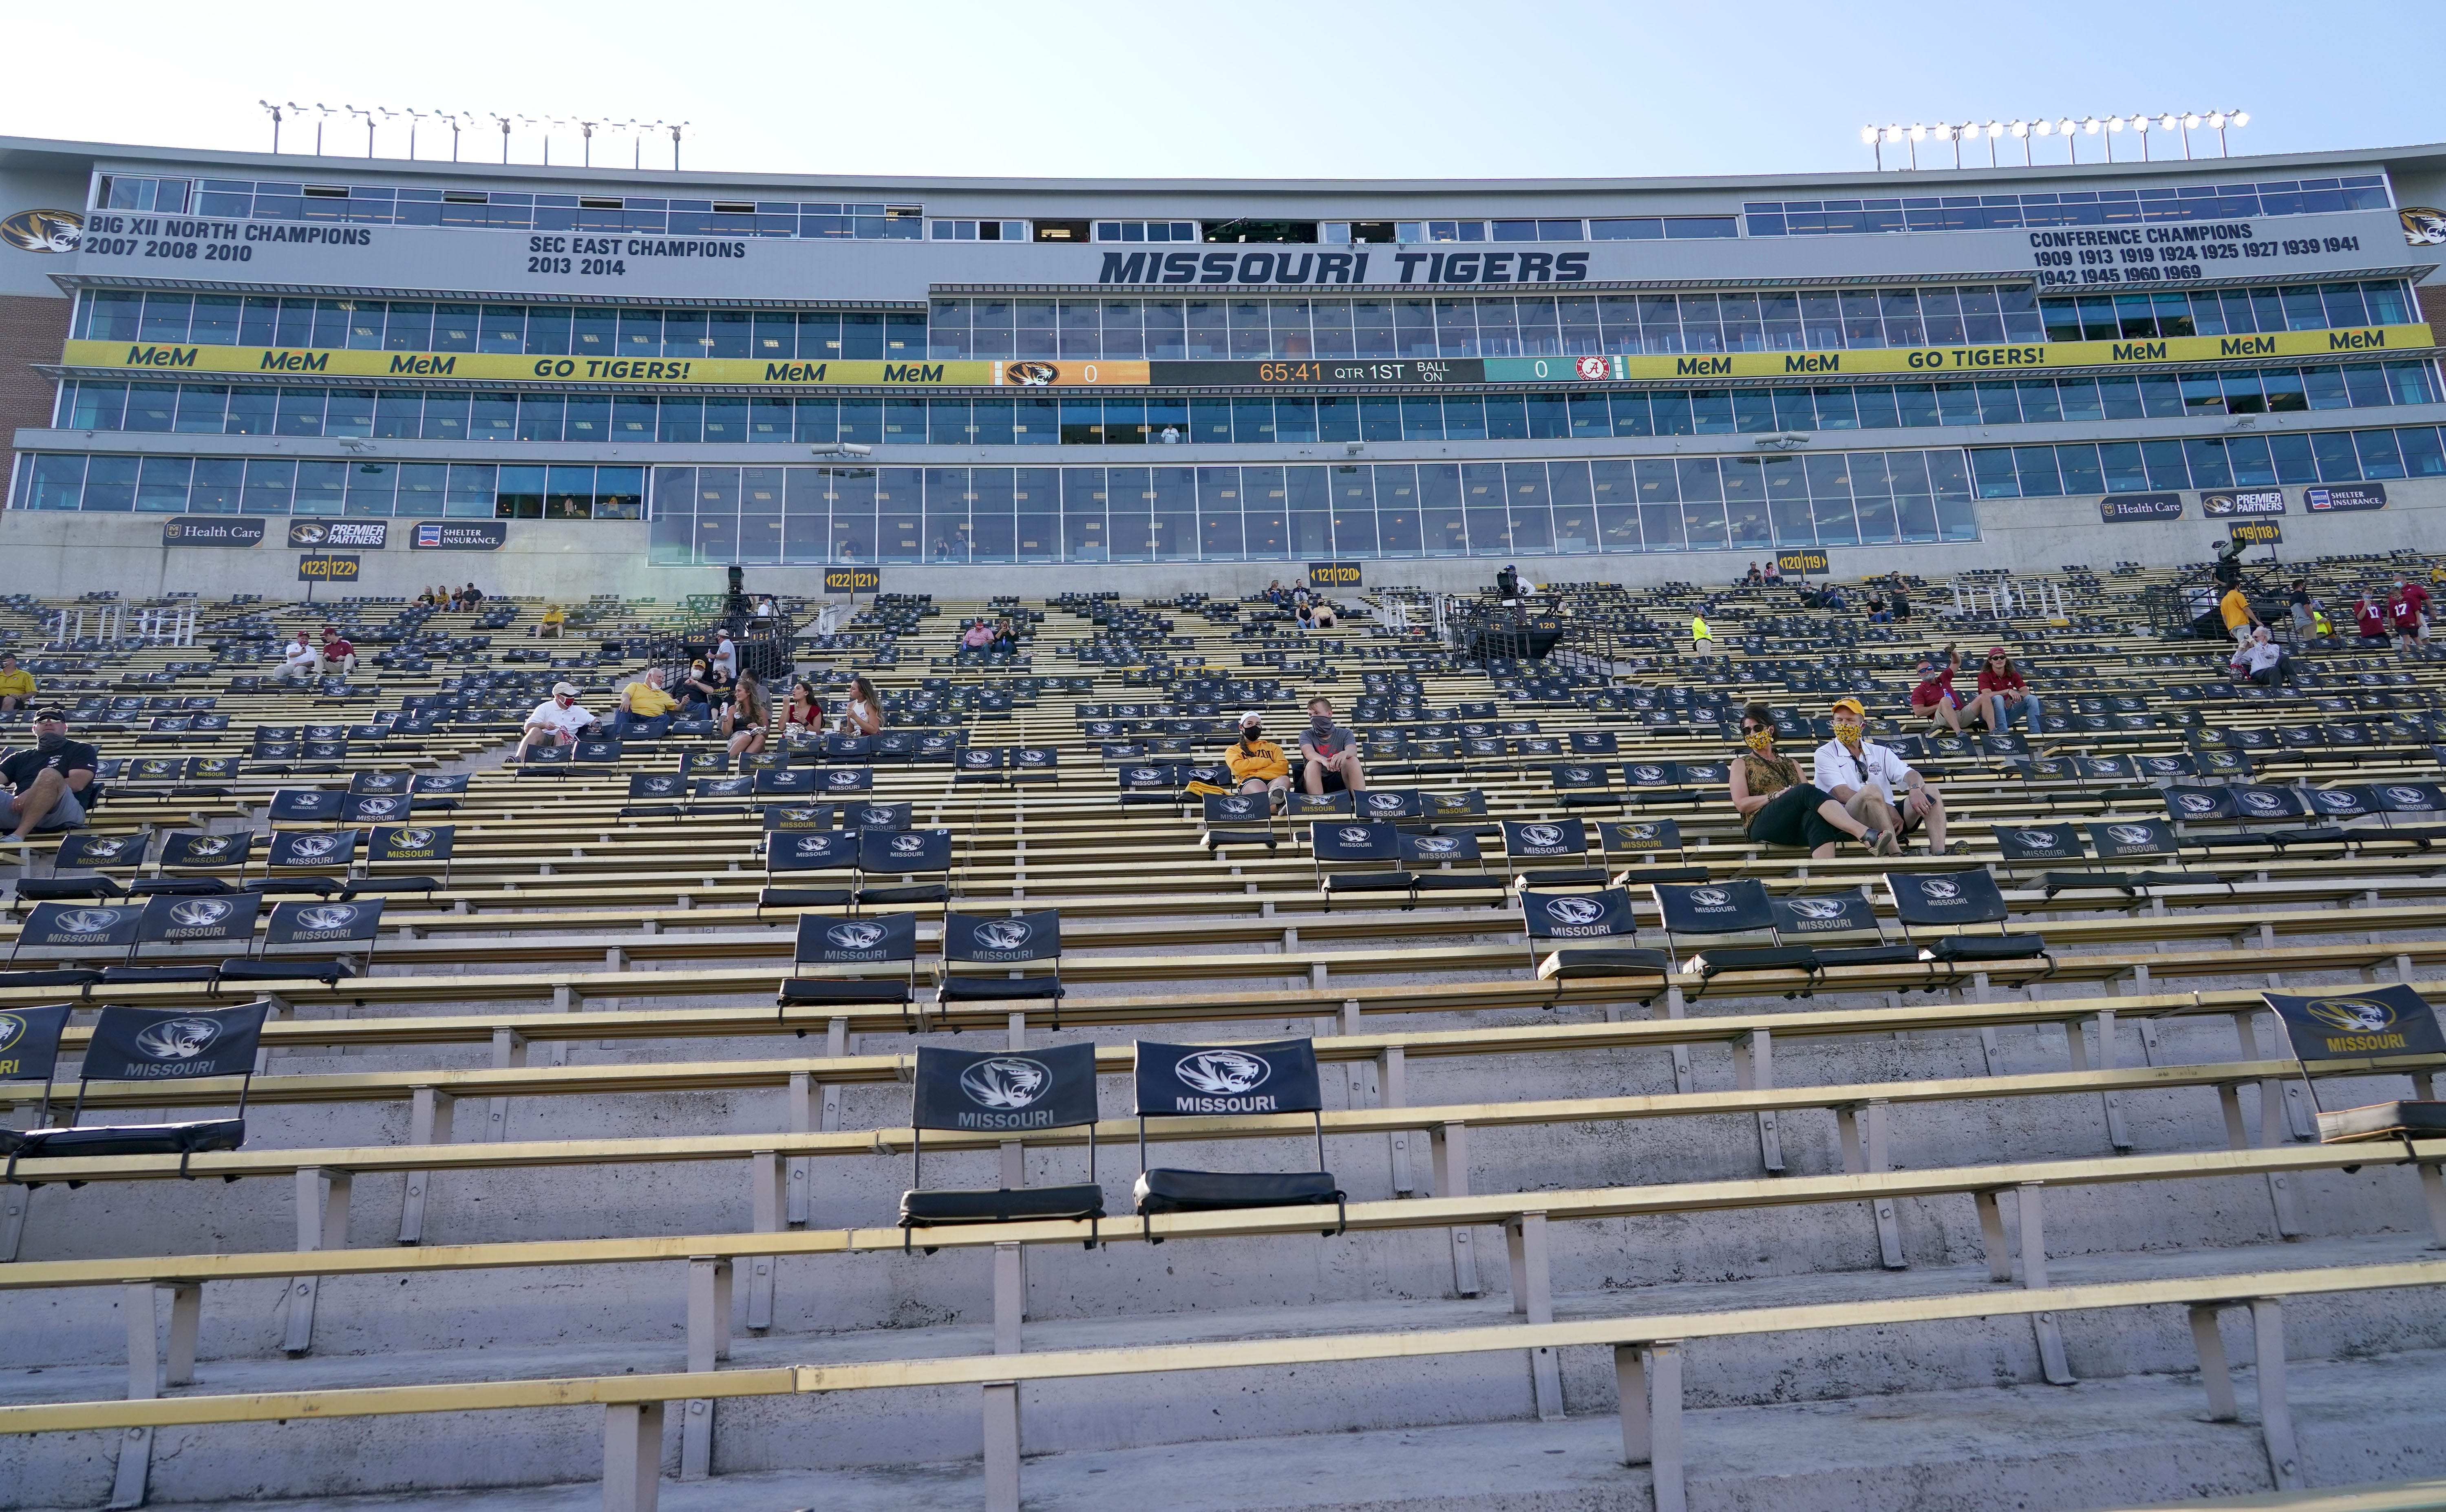 Mizzou Lsu Game Moved To Faurot Field In Columbia Over Hurricane Delta